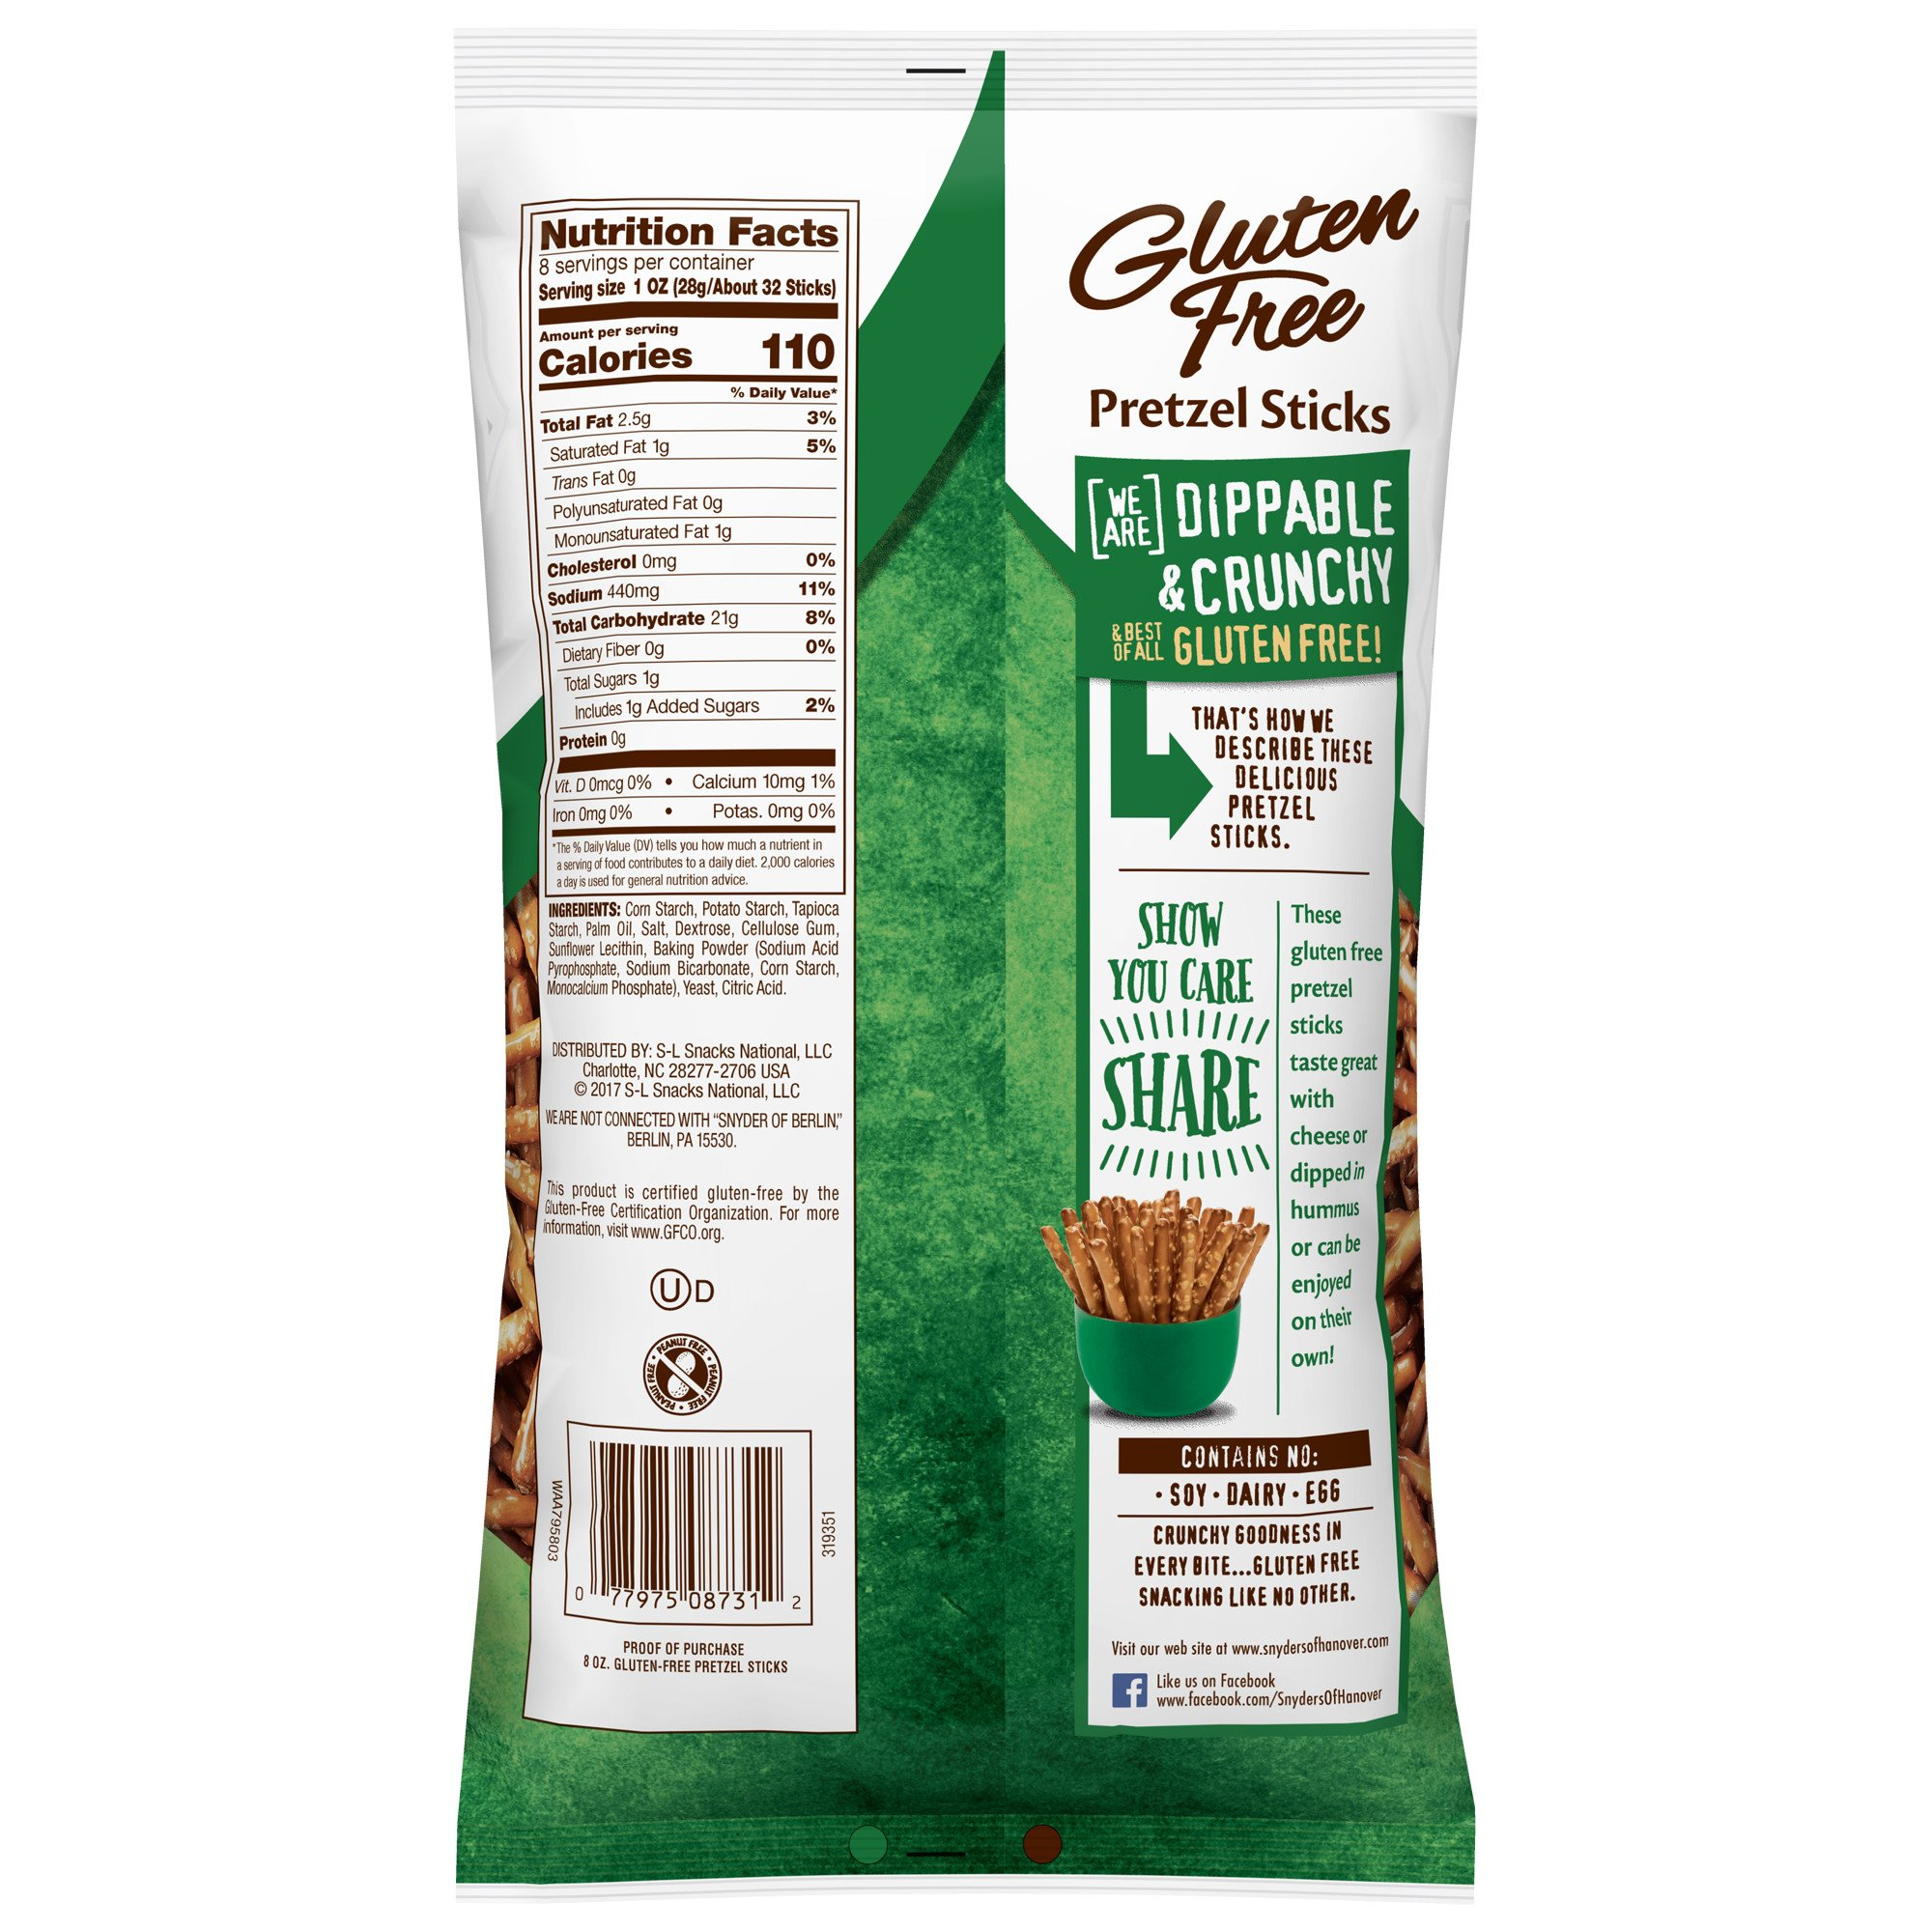 Snyder's of Hanover Gluten Free Pretzel Sticks, 8 Ounce (Pack of 12) by Snyder's of Hanover (Image #3)